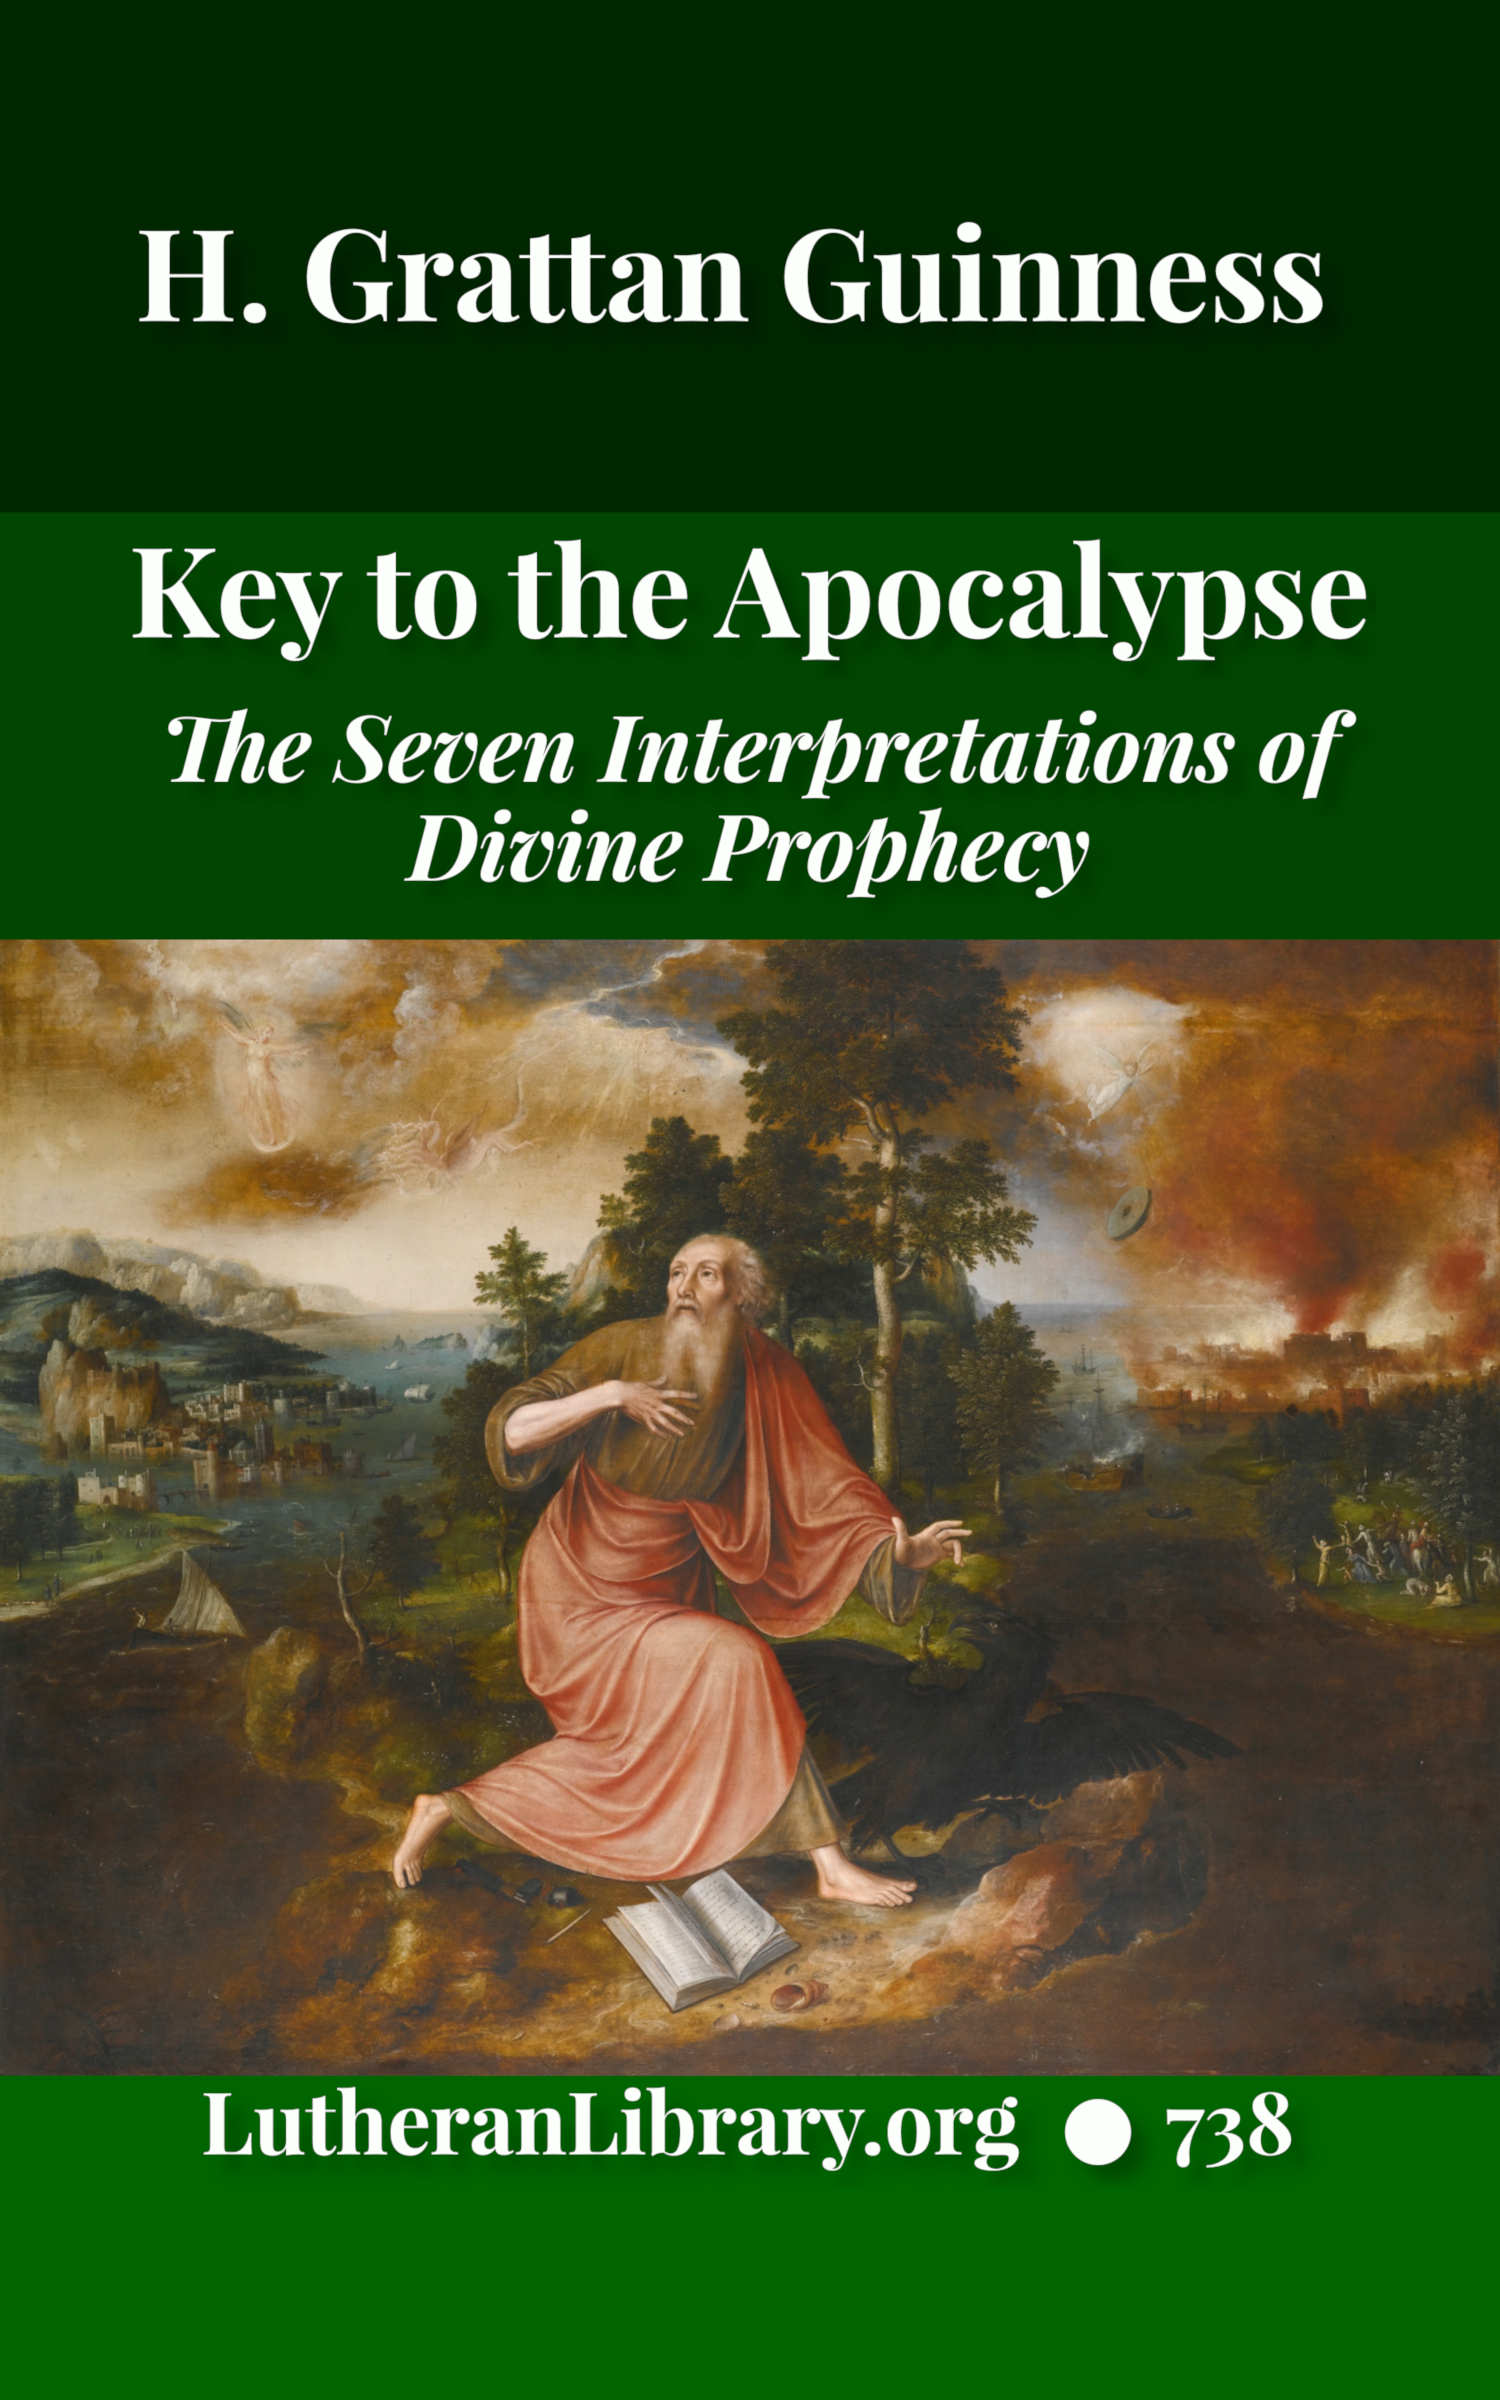 The Key to the Apocalypse by H. Grattan Guinness